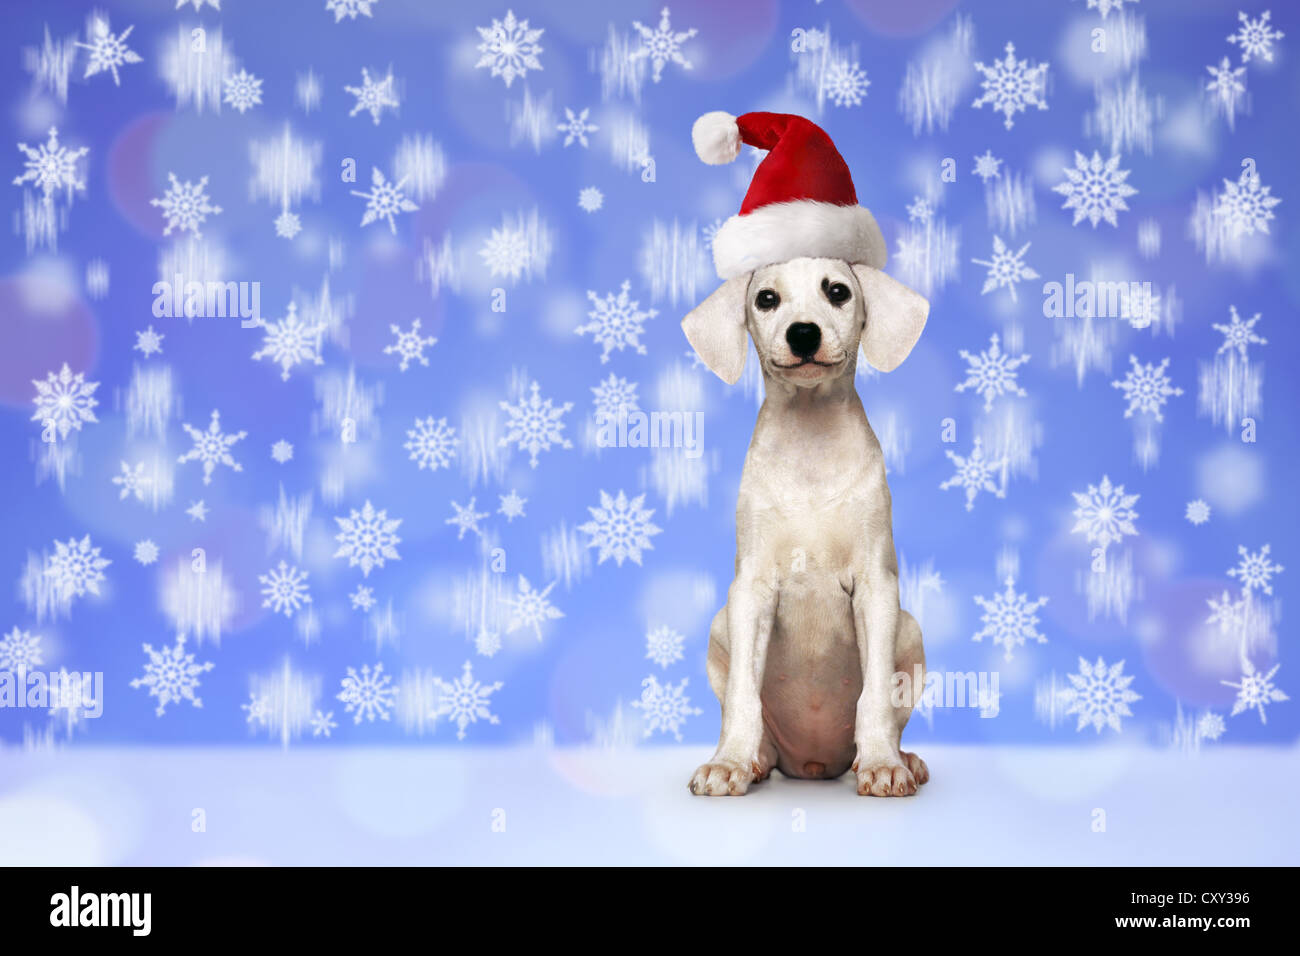 Puppy, white, seated, with a red Santa hat, snowflakes - Stock Image